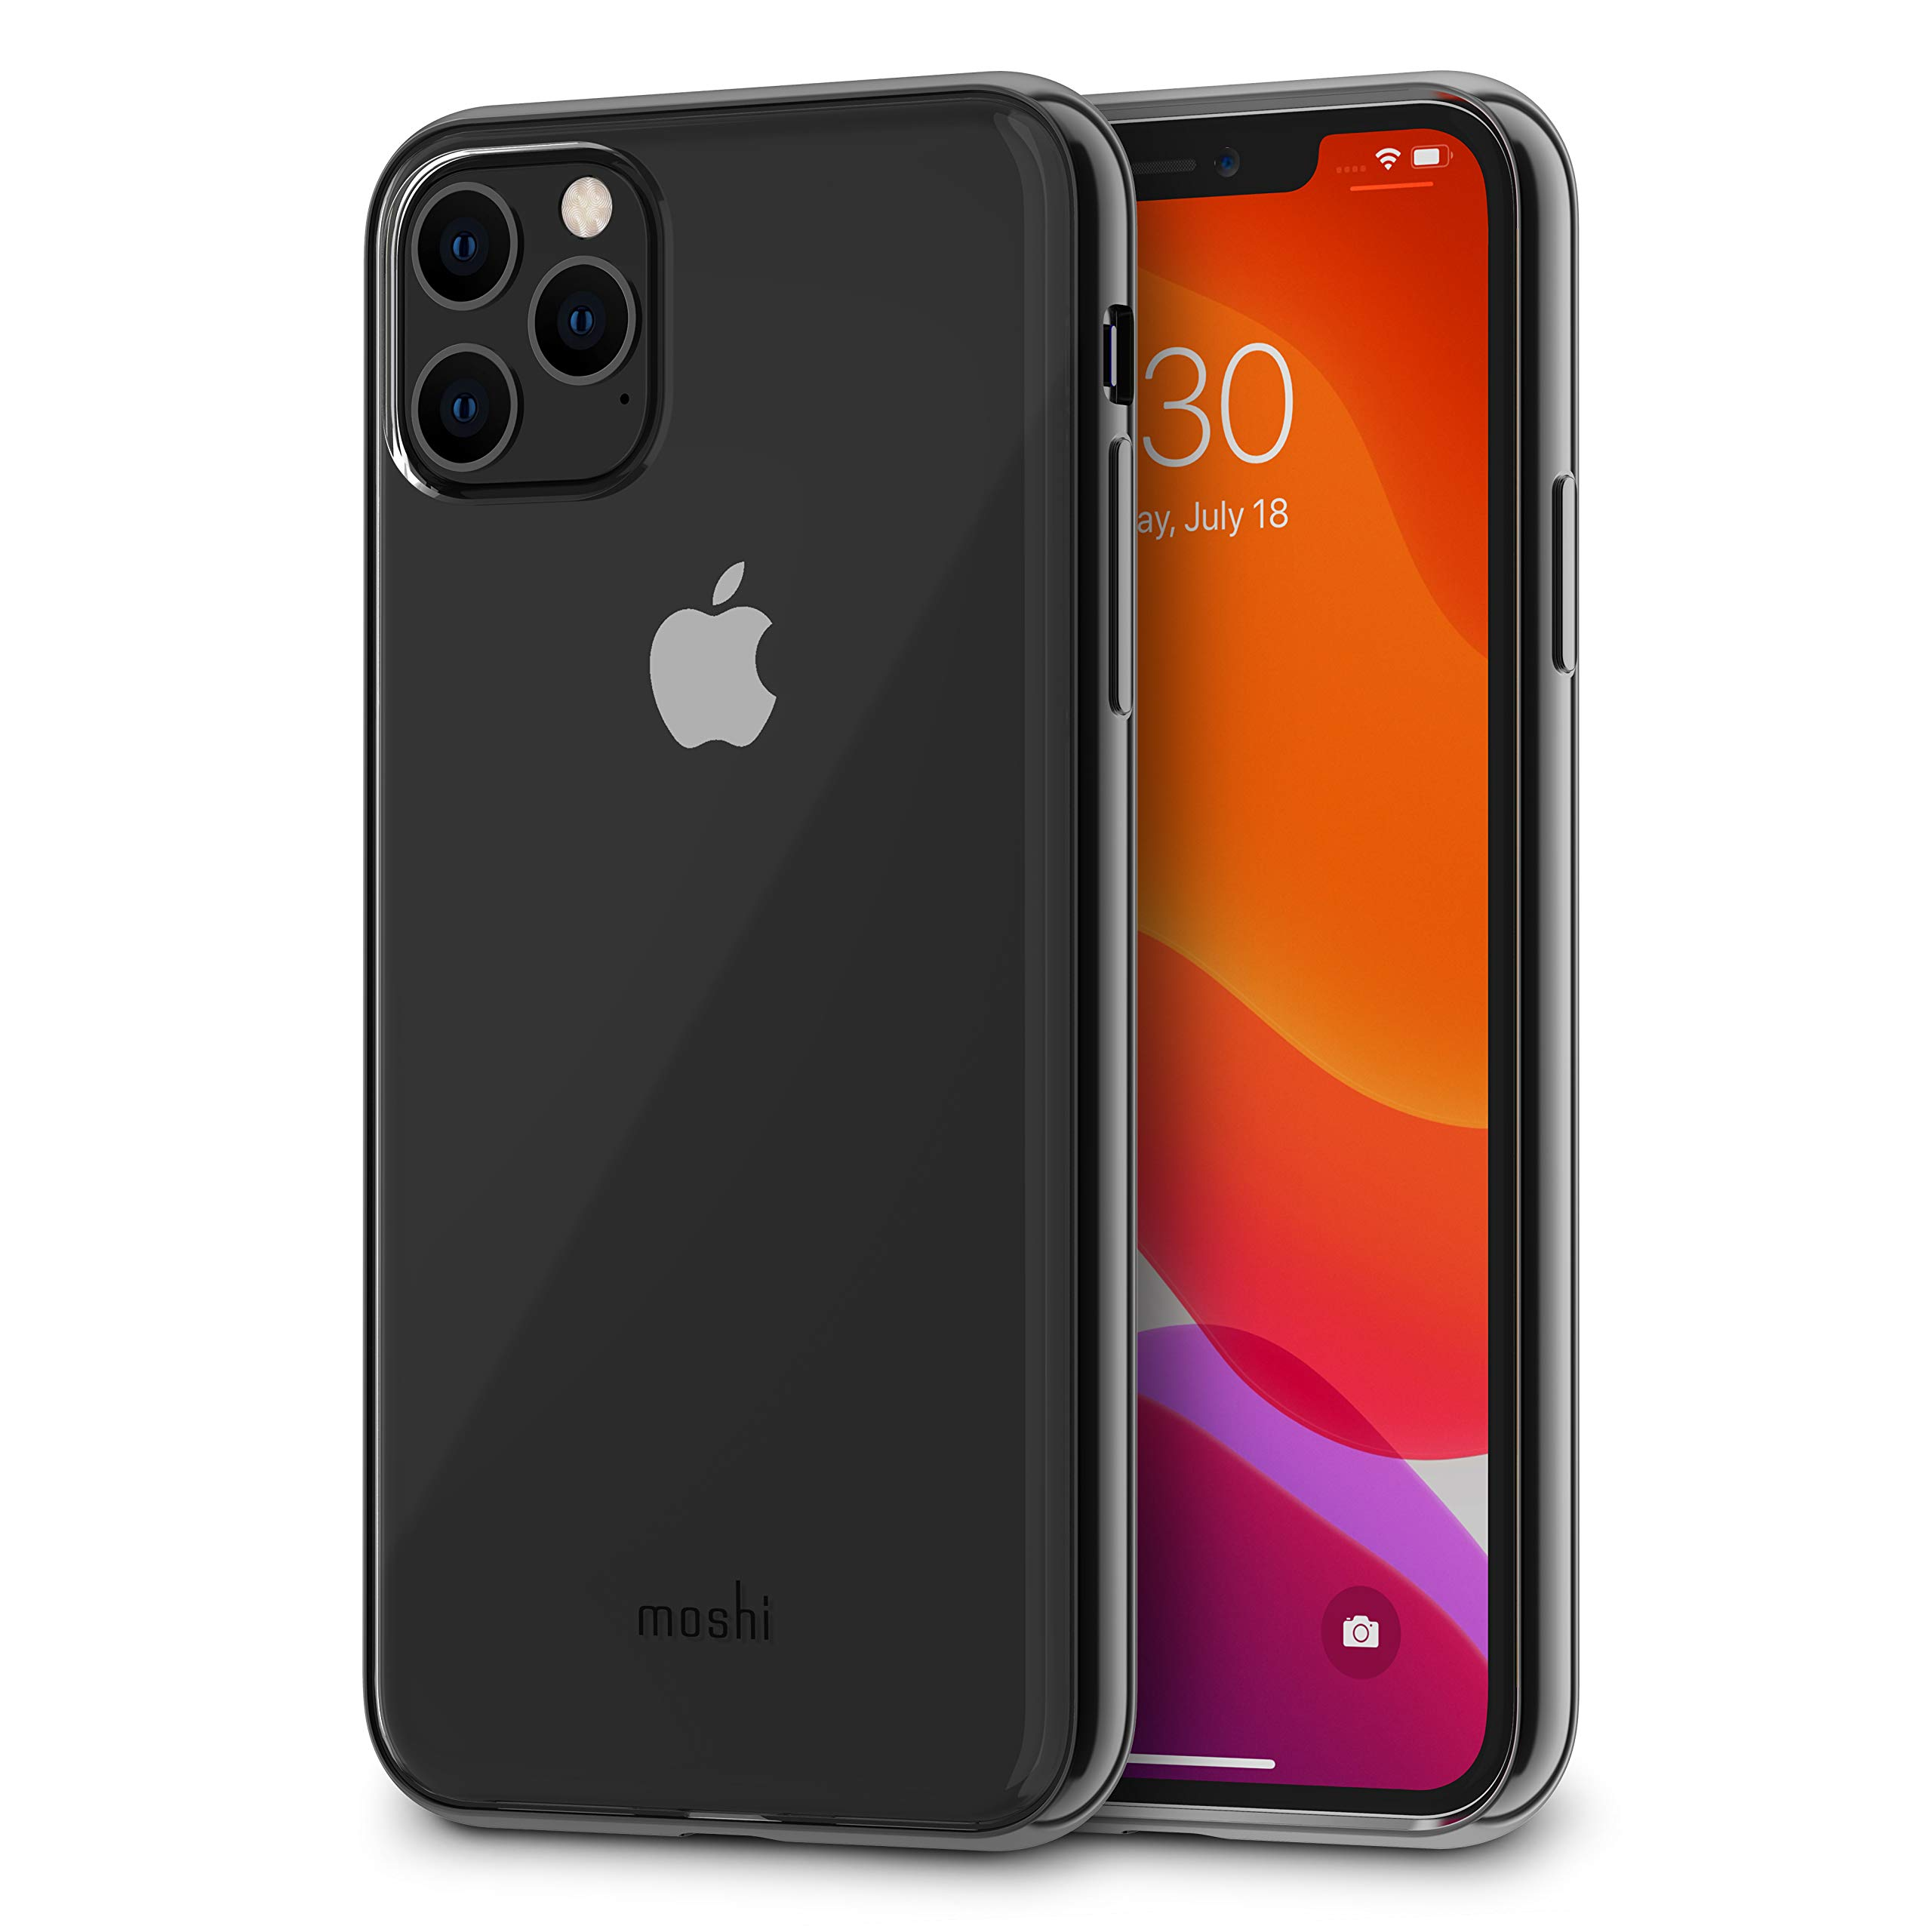 Moshi Vitros for iPhone 11 Pro Max Case 6.5-inch, Military Drop Protection, Flexible TPU, Slim Thin Phone Cover for iPhone 11 Pro Max, Raven Black Frame